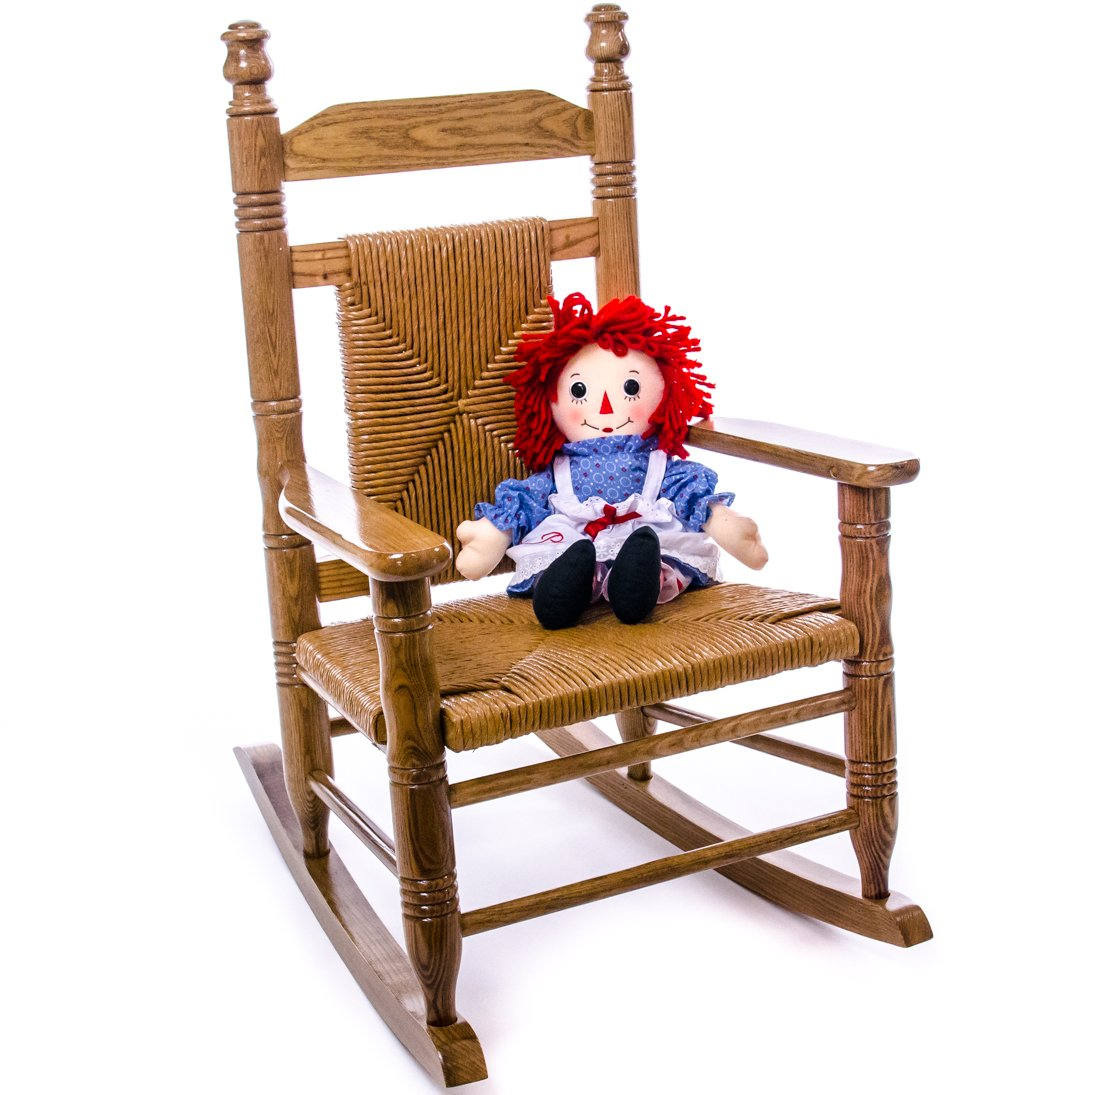 Pleasant Hardwood Woven Child Rocking Chair Cracker Barrel Beatyapartments Chair Design Images Beatyapartmentscom